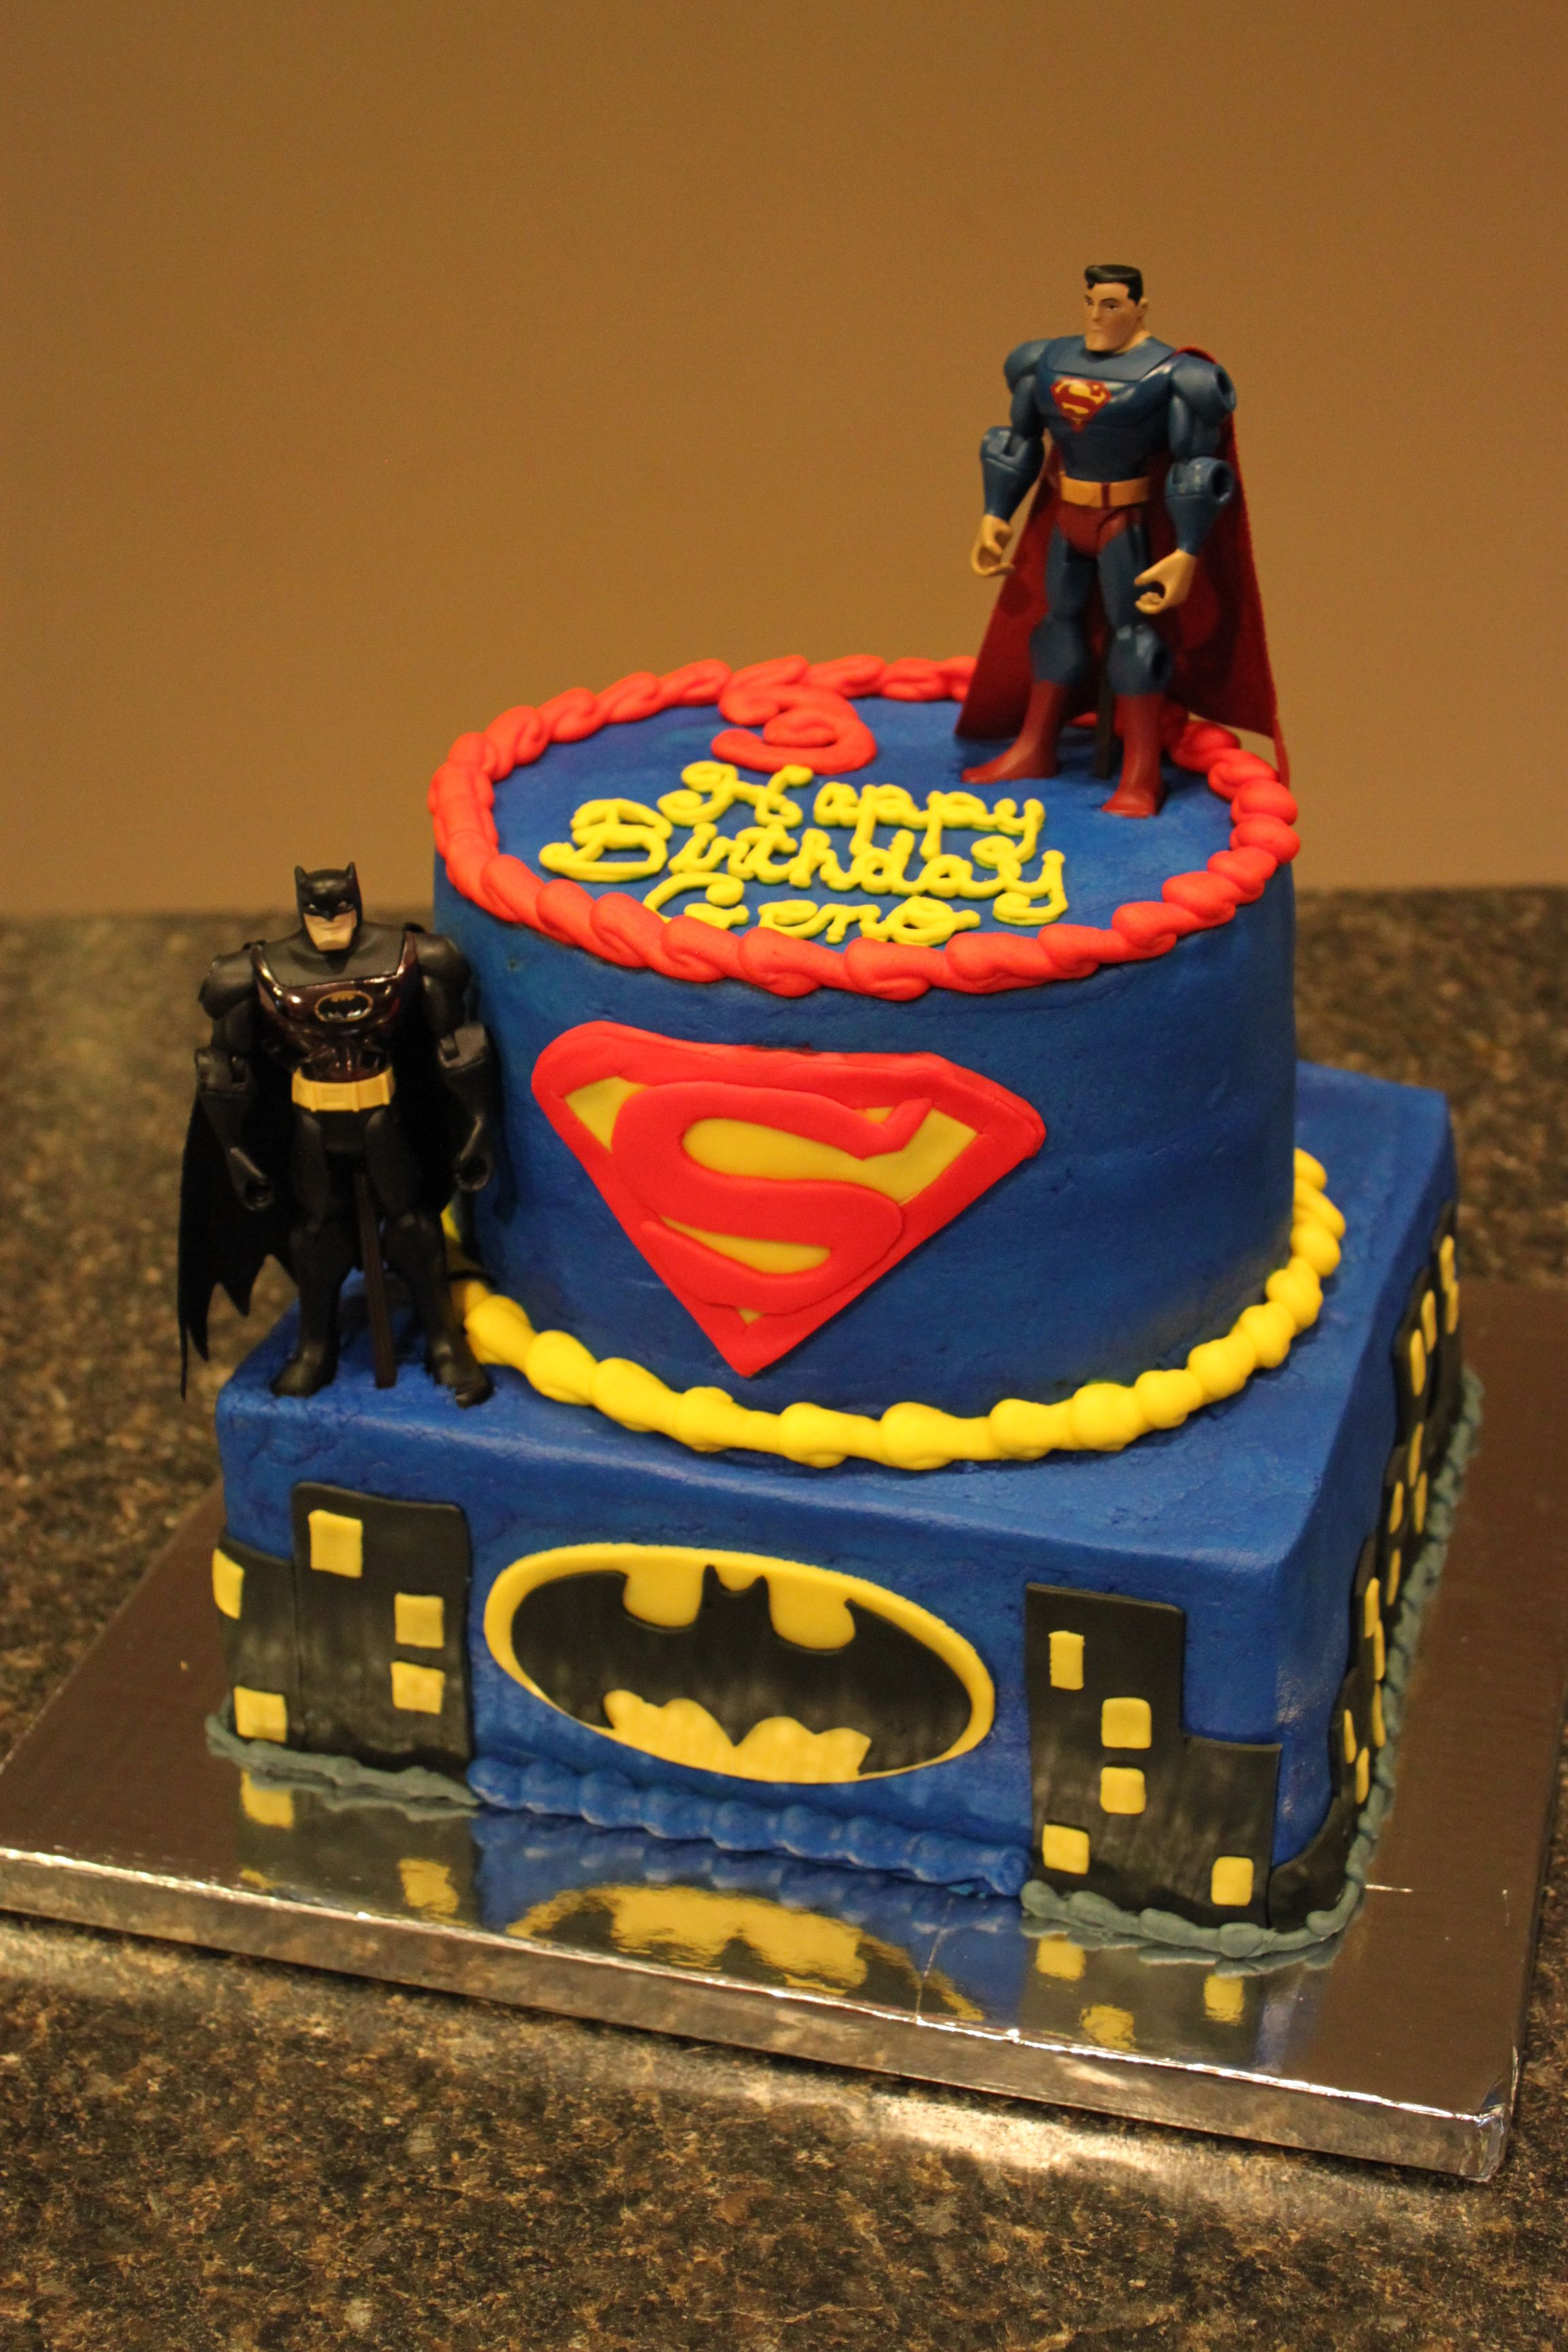 Batman Superman Cake As Requested By Two Big Boys